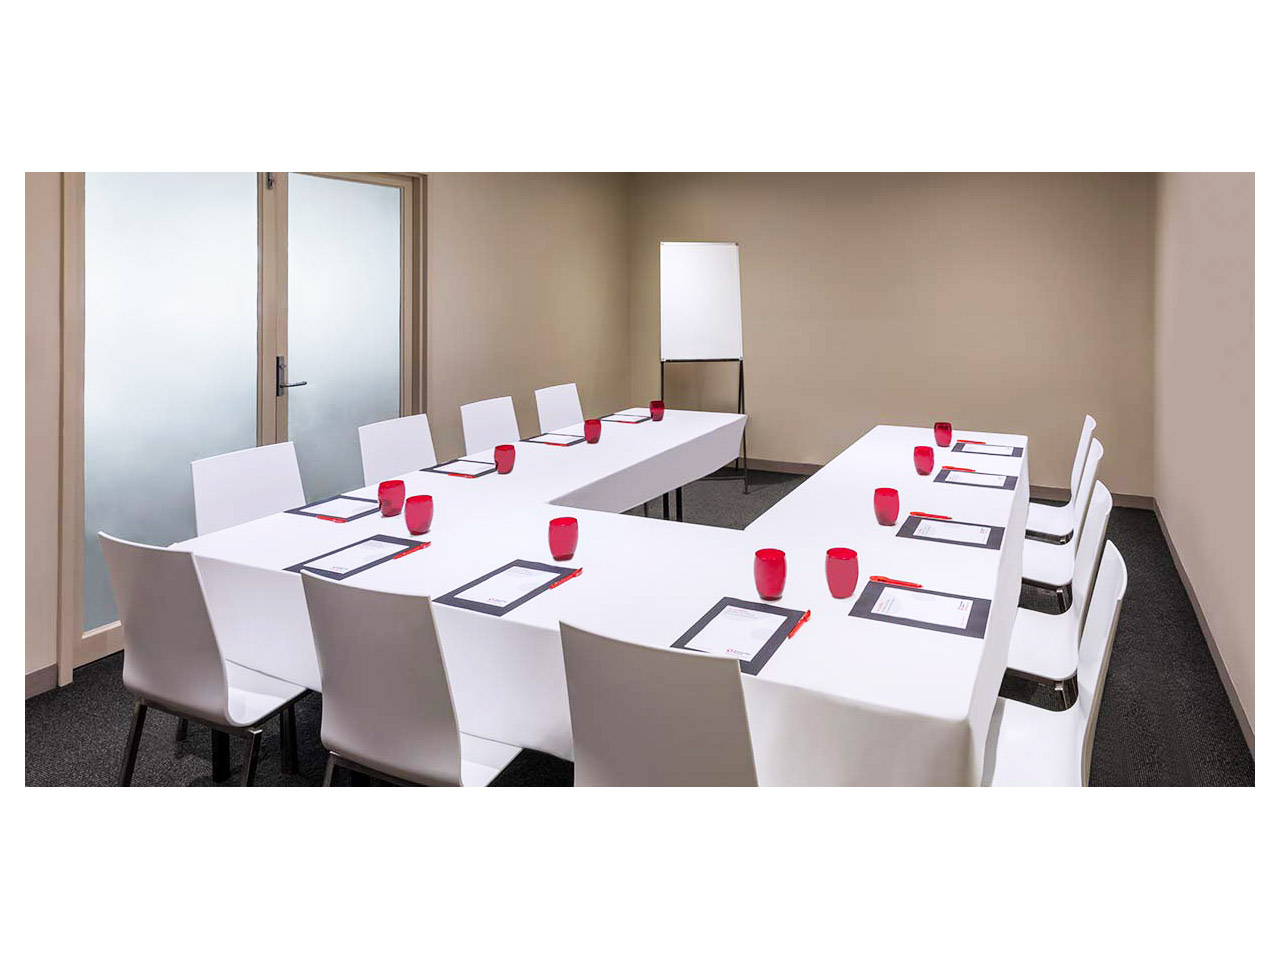 Small meeting room set with white tables and glass door